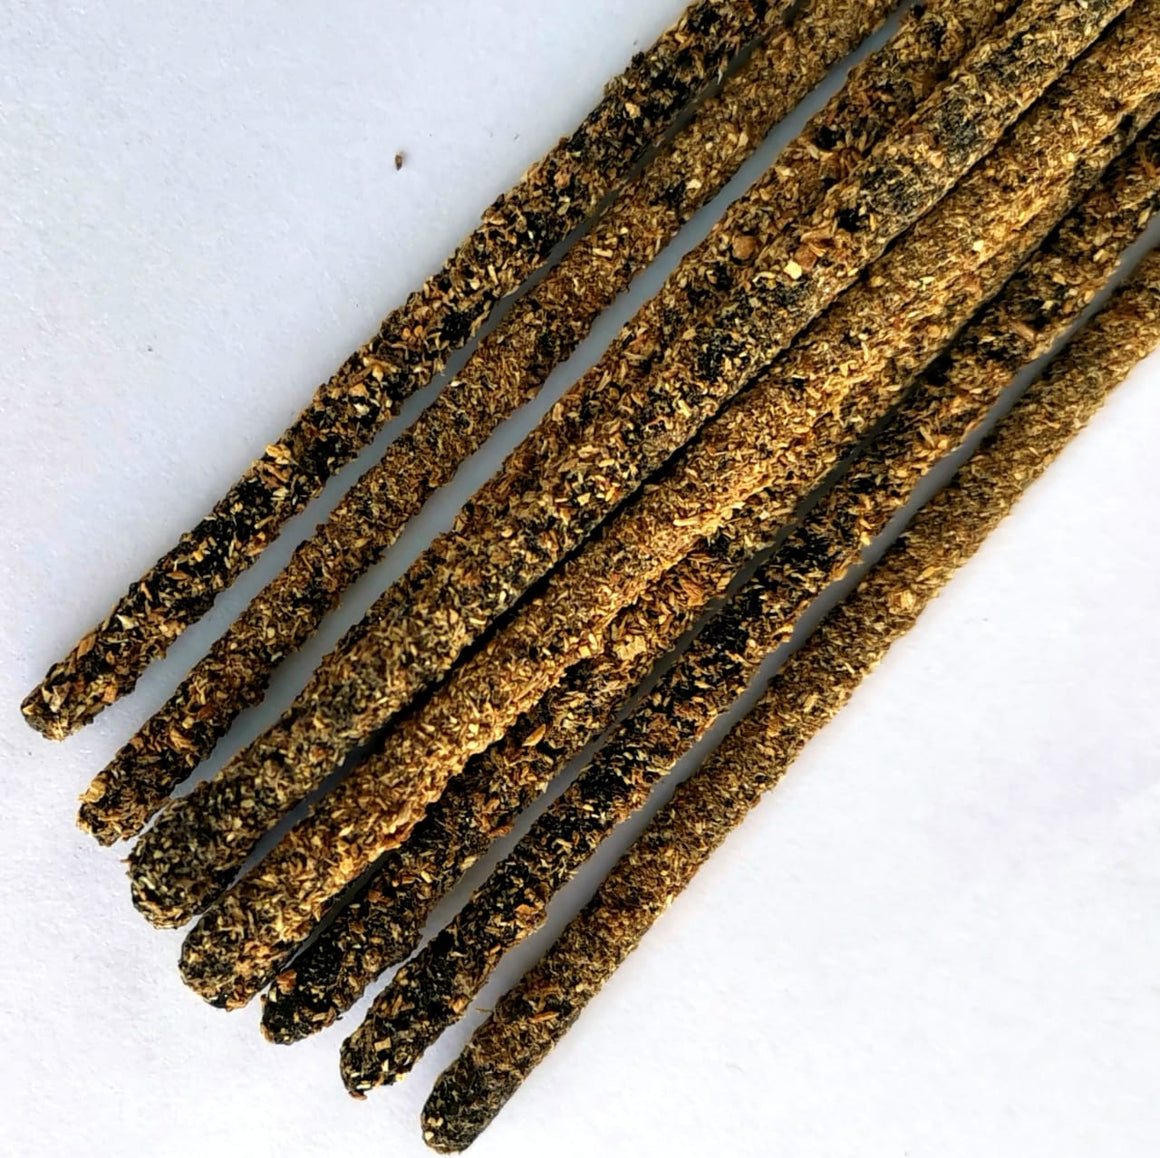 20 Palo Santo Incense Sticks Handrolled In Mexico Long Duration